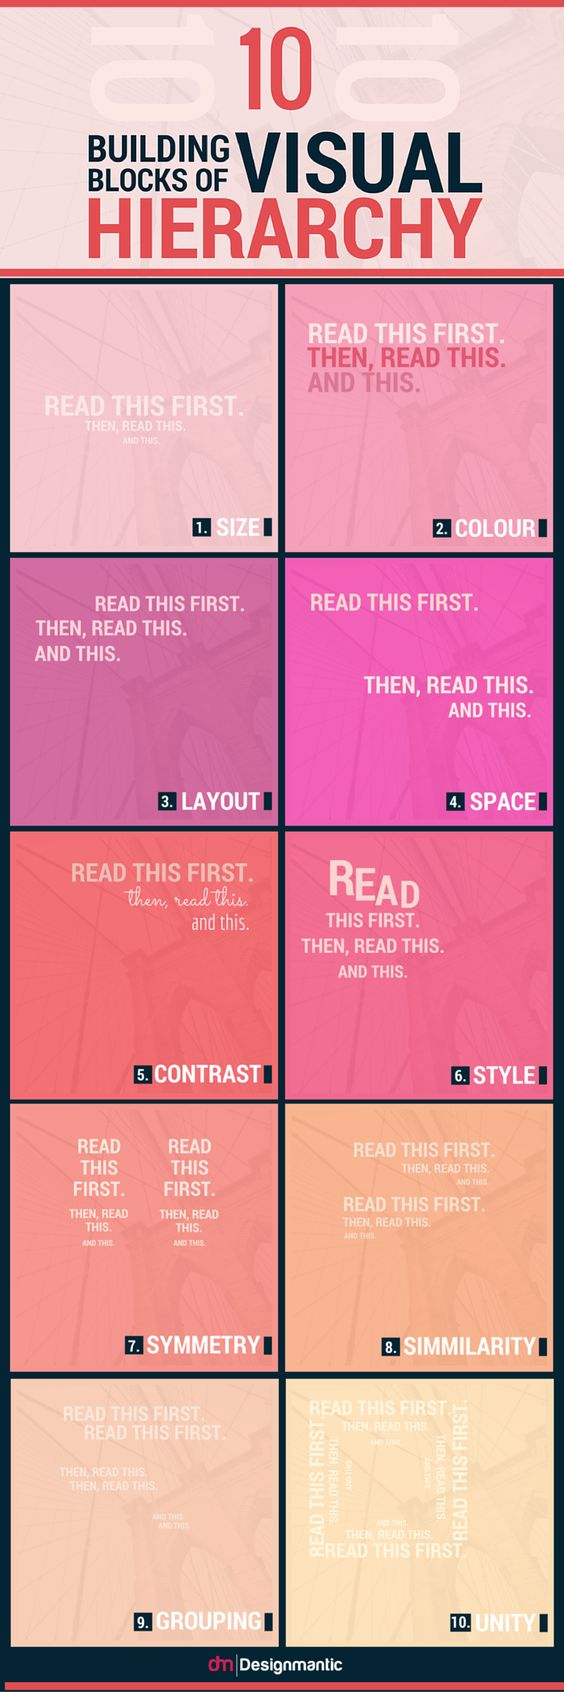 10 Fundamental Principles Of Visual Hierarchy   graphic design. visual communications. design resources. hierarchy. layout. design. design rules. design principles. infographic.